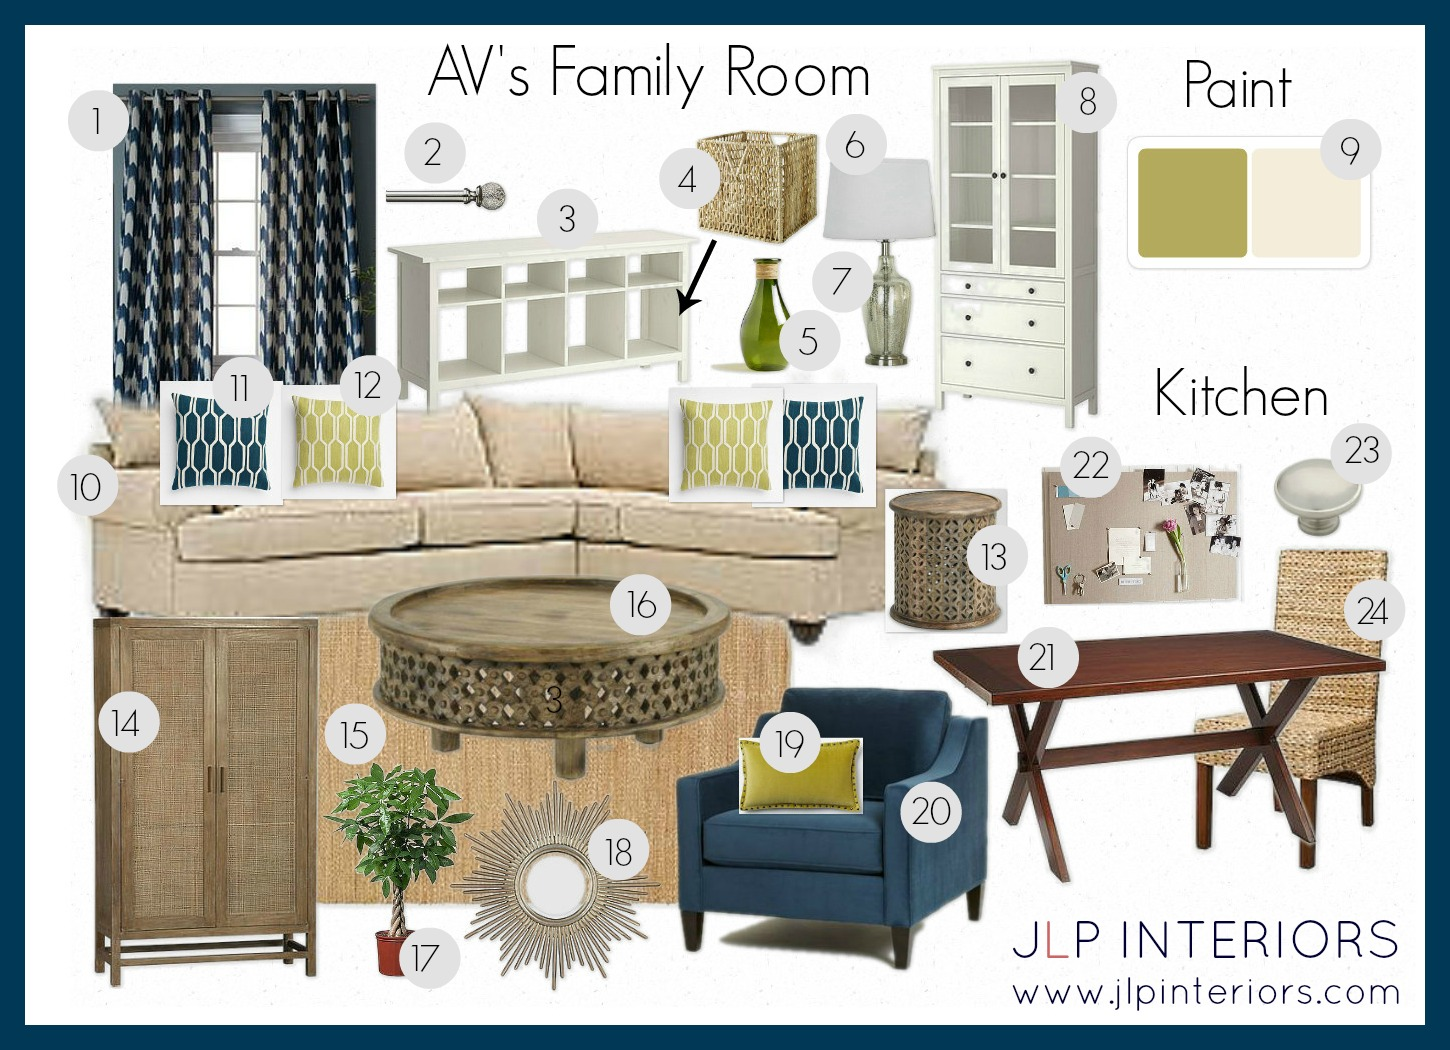 Home with baxter e design av 39 s family room and homegoods gift card winner announced Home decor pinterest boards to follow